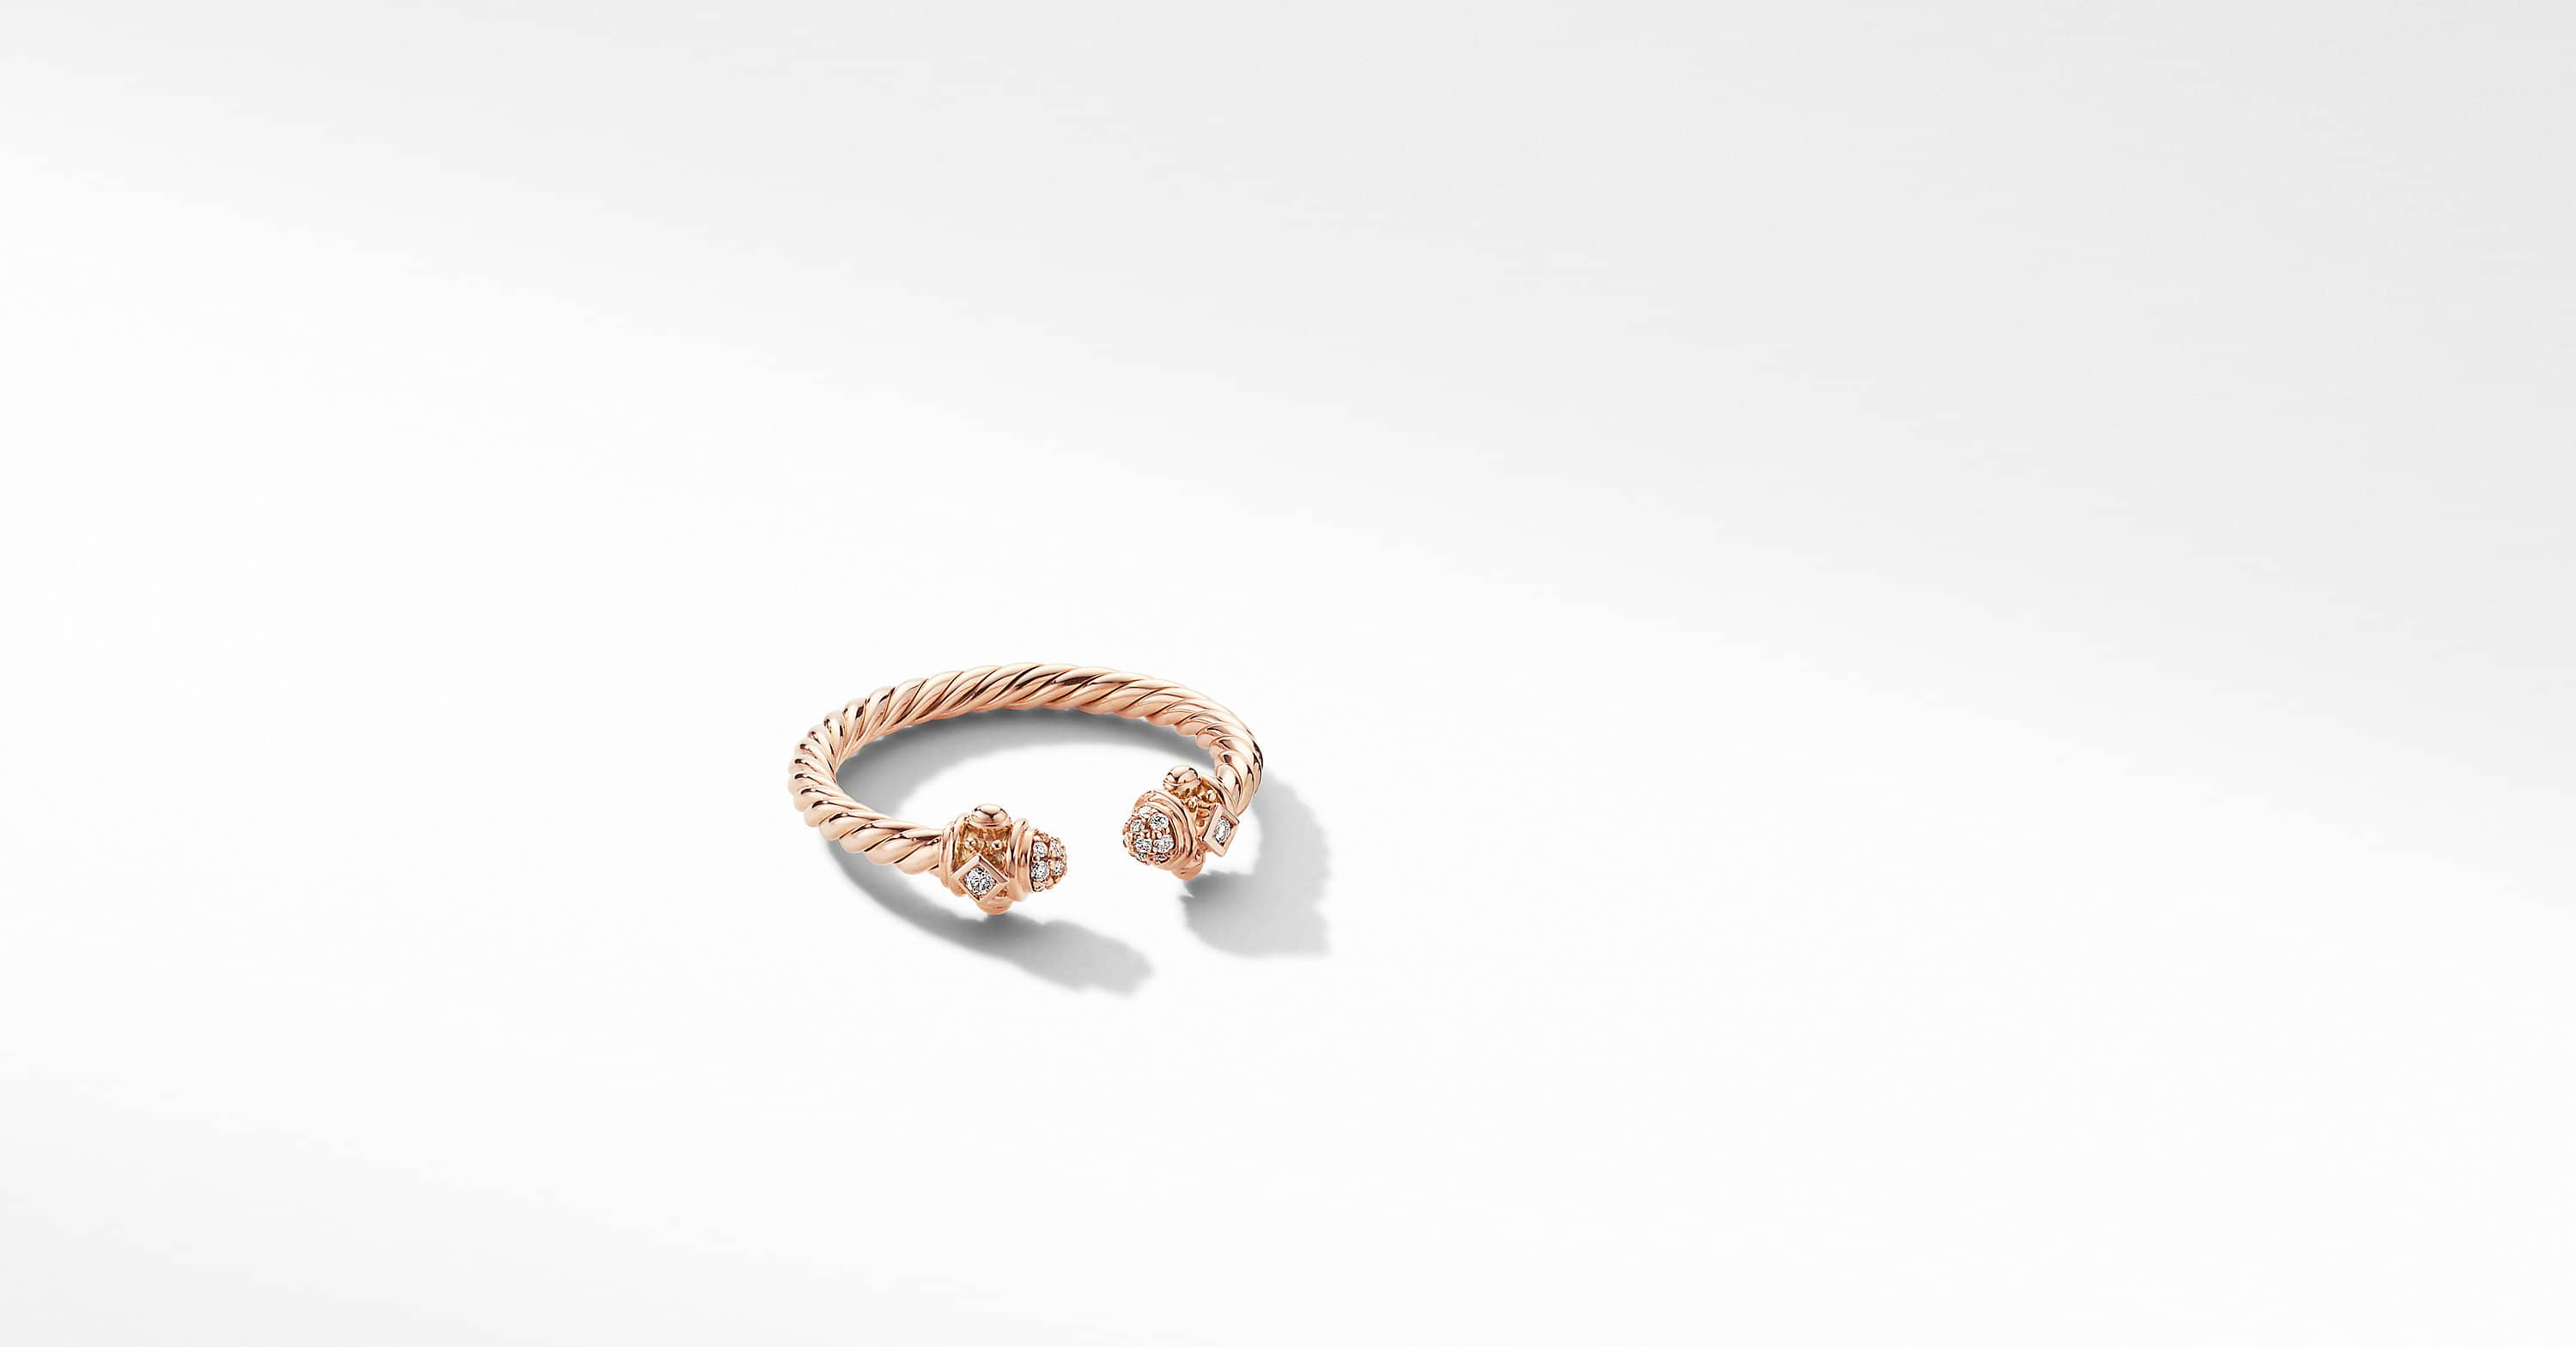 Renaissance Ring in 18K Rose Gold with Diamonds